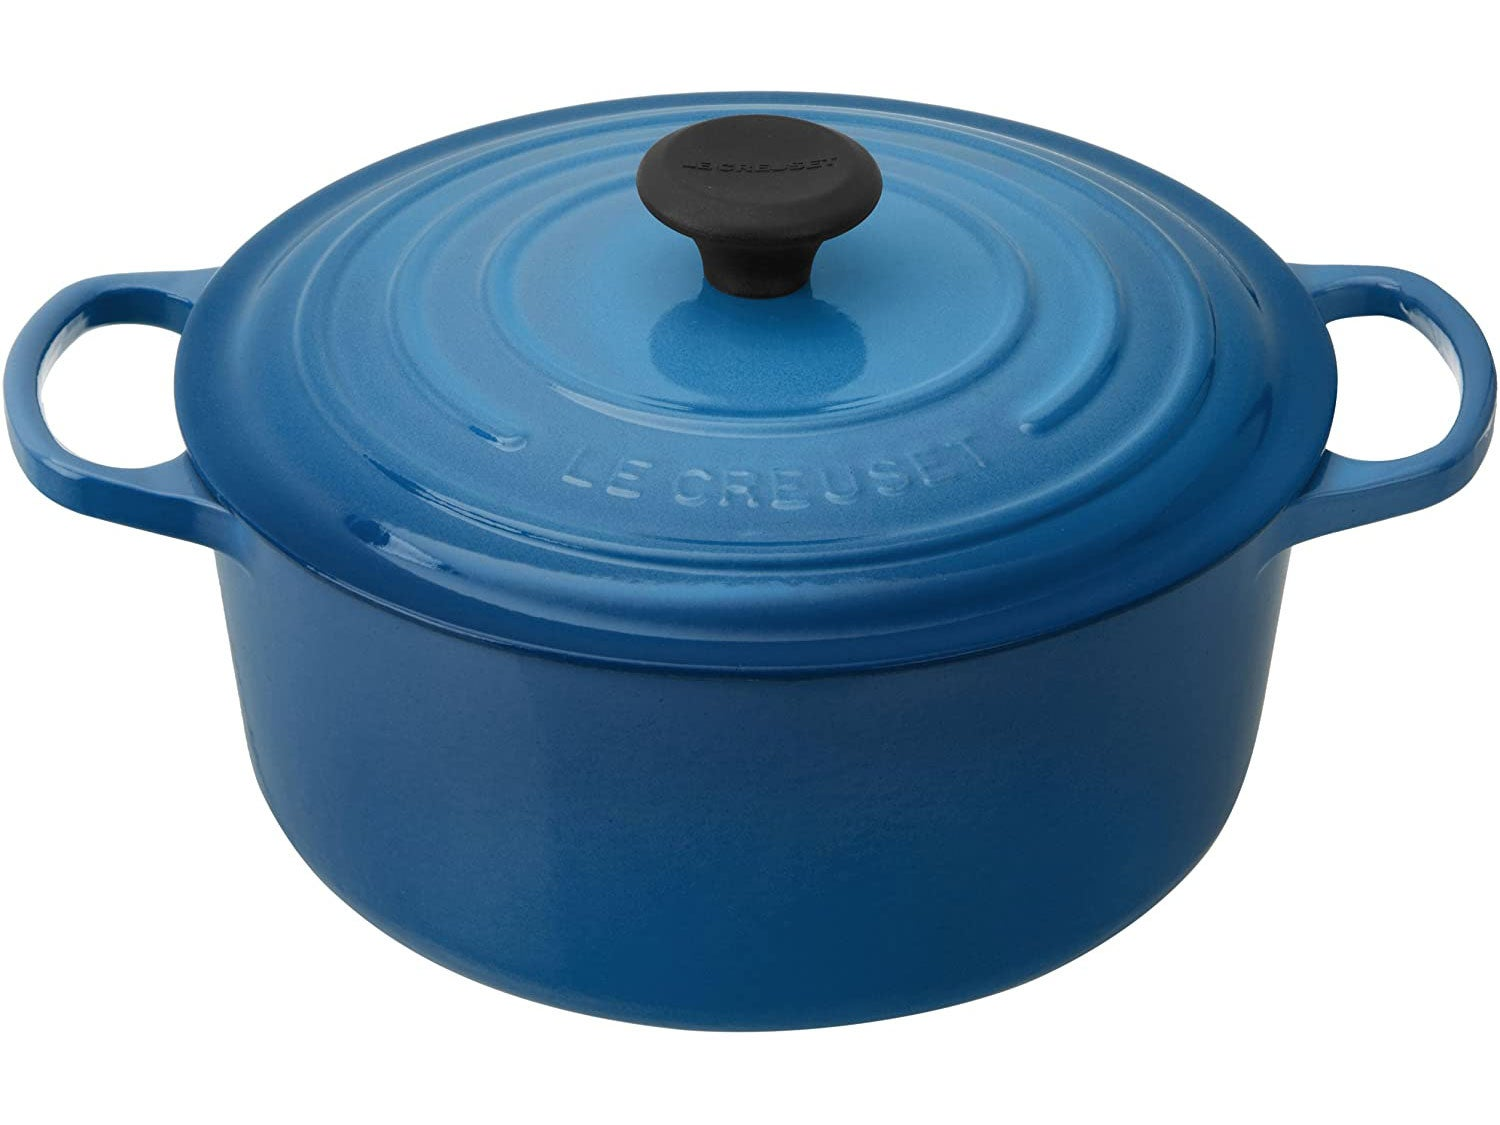 Le Creuset LS2501-2659 Signature Enameled Cast-Iron Round French (Dutch) Oven